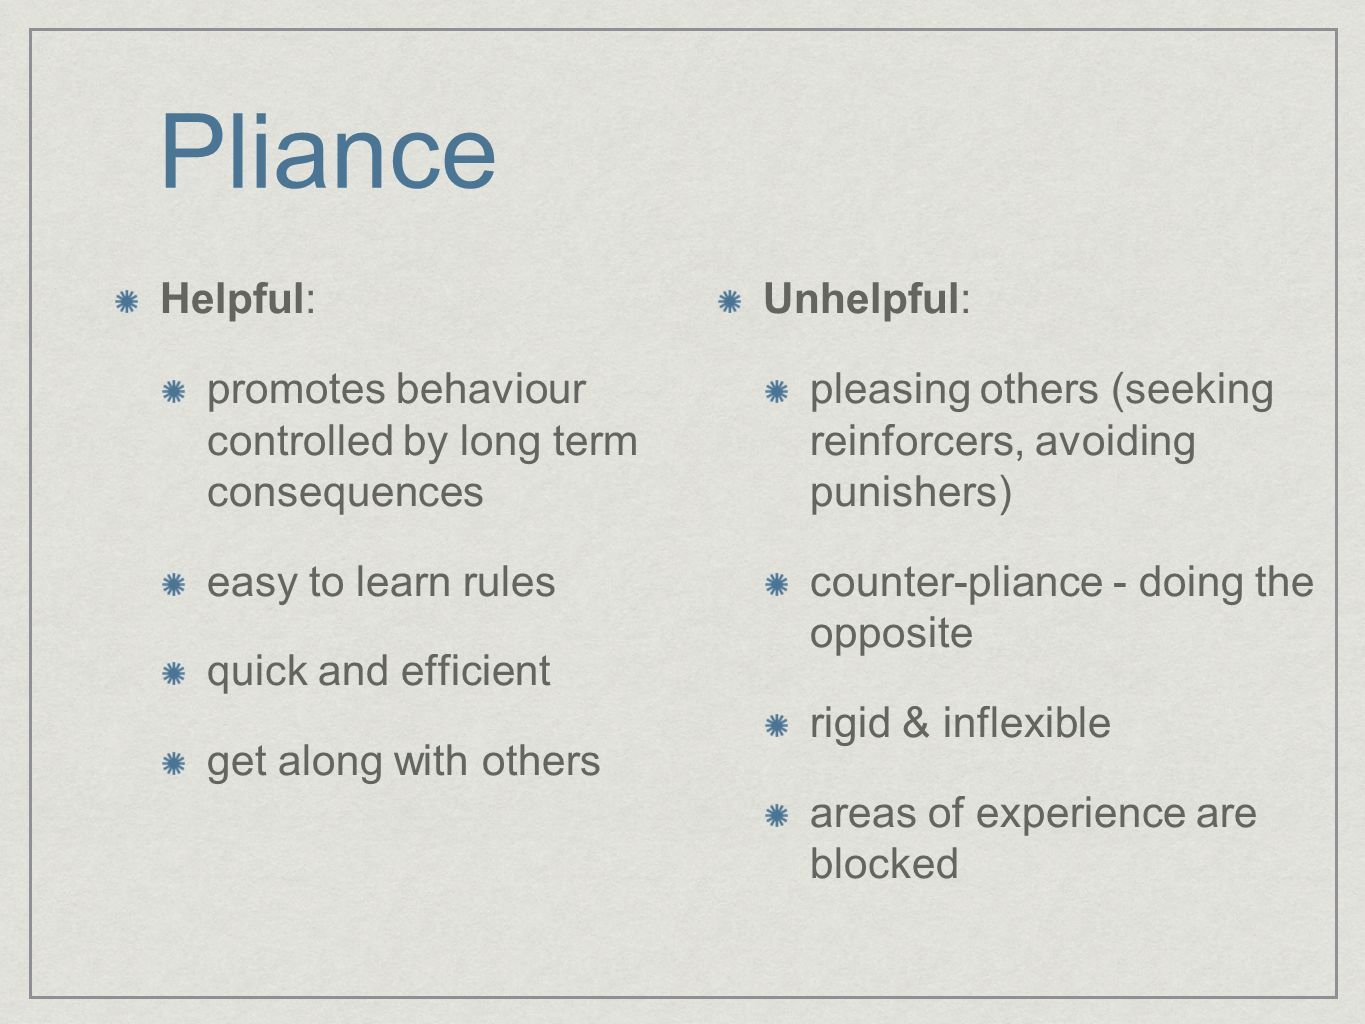 Pliance Helpful: promotes behaviour controlled by long term consequences easy to learn rules quick and efficient get along with others Unhelpful: pleasing others (seeking reinforcers, avoiding punishers) counter-pliance - doing the opposite rigid & inflexible areas of experience are blocked